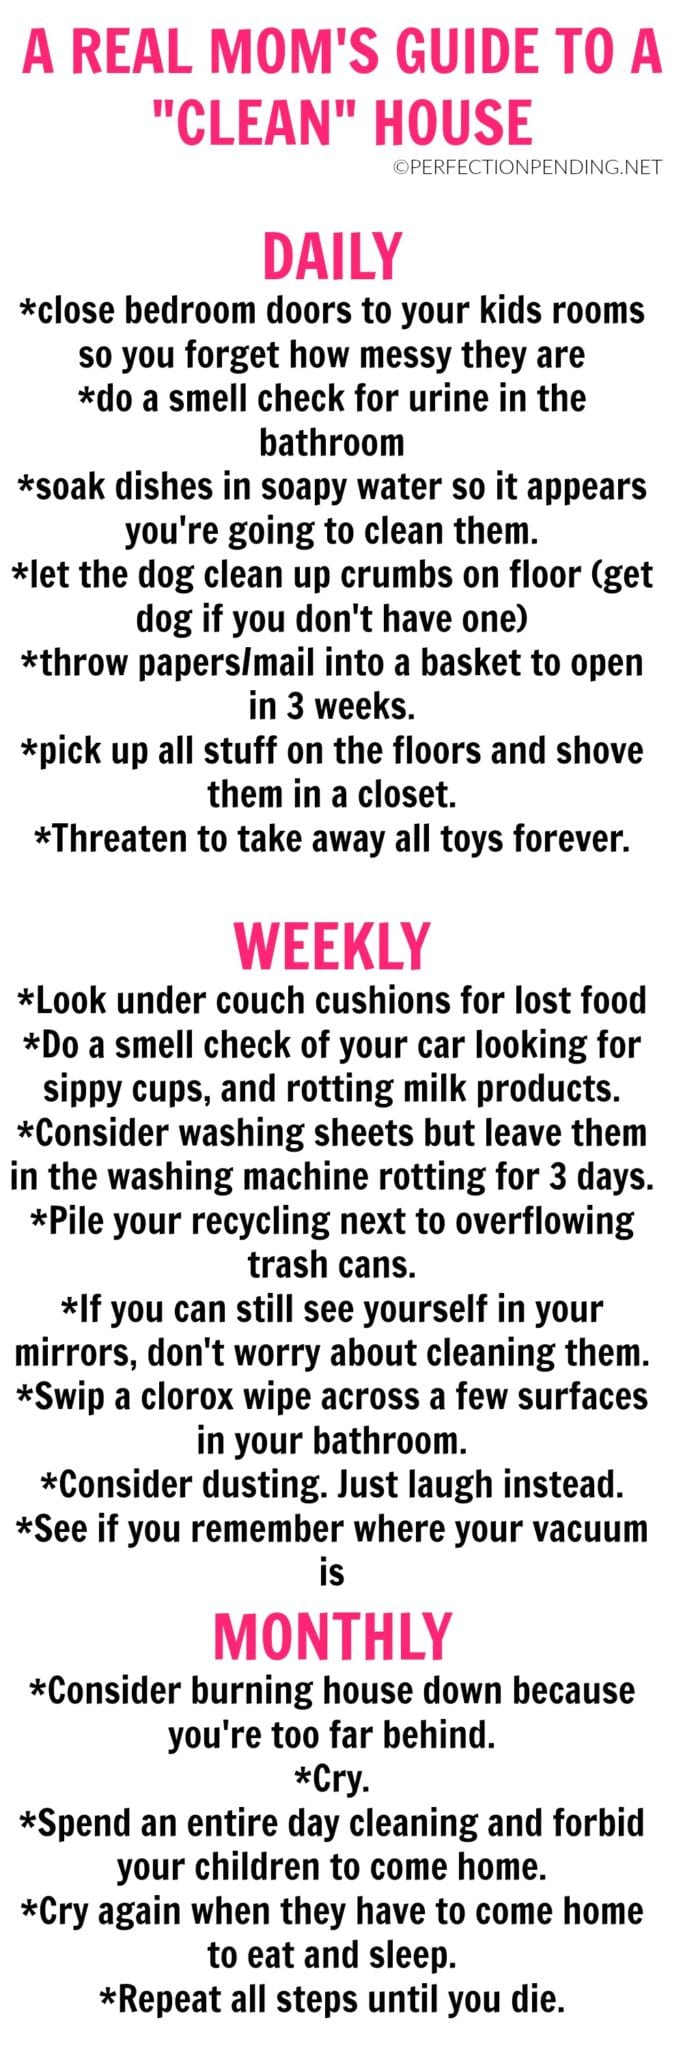 Keeping the house clean when you have kids is practically impossible - unless you use this real mom's version of a cleaning chart. #cleaning #house #parenting